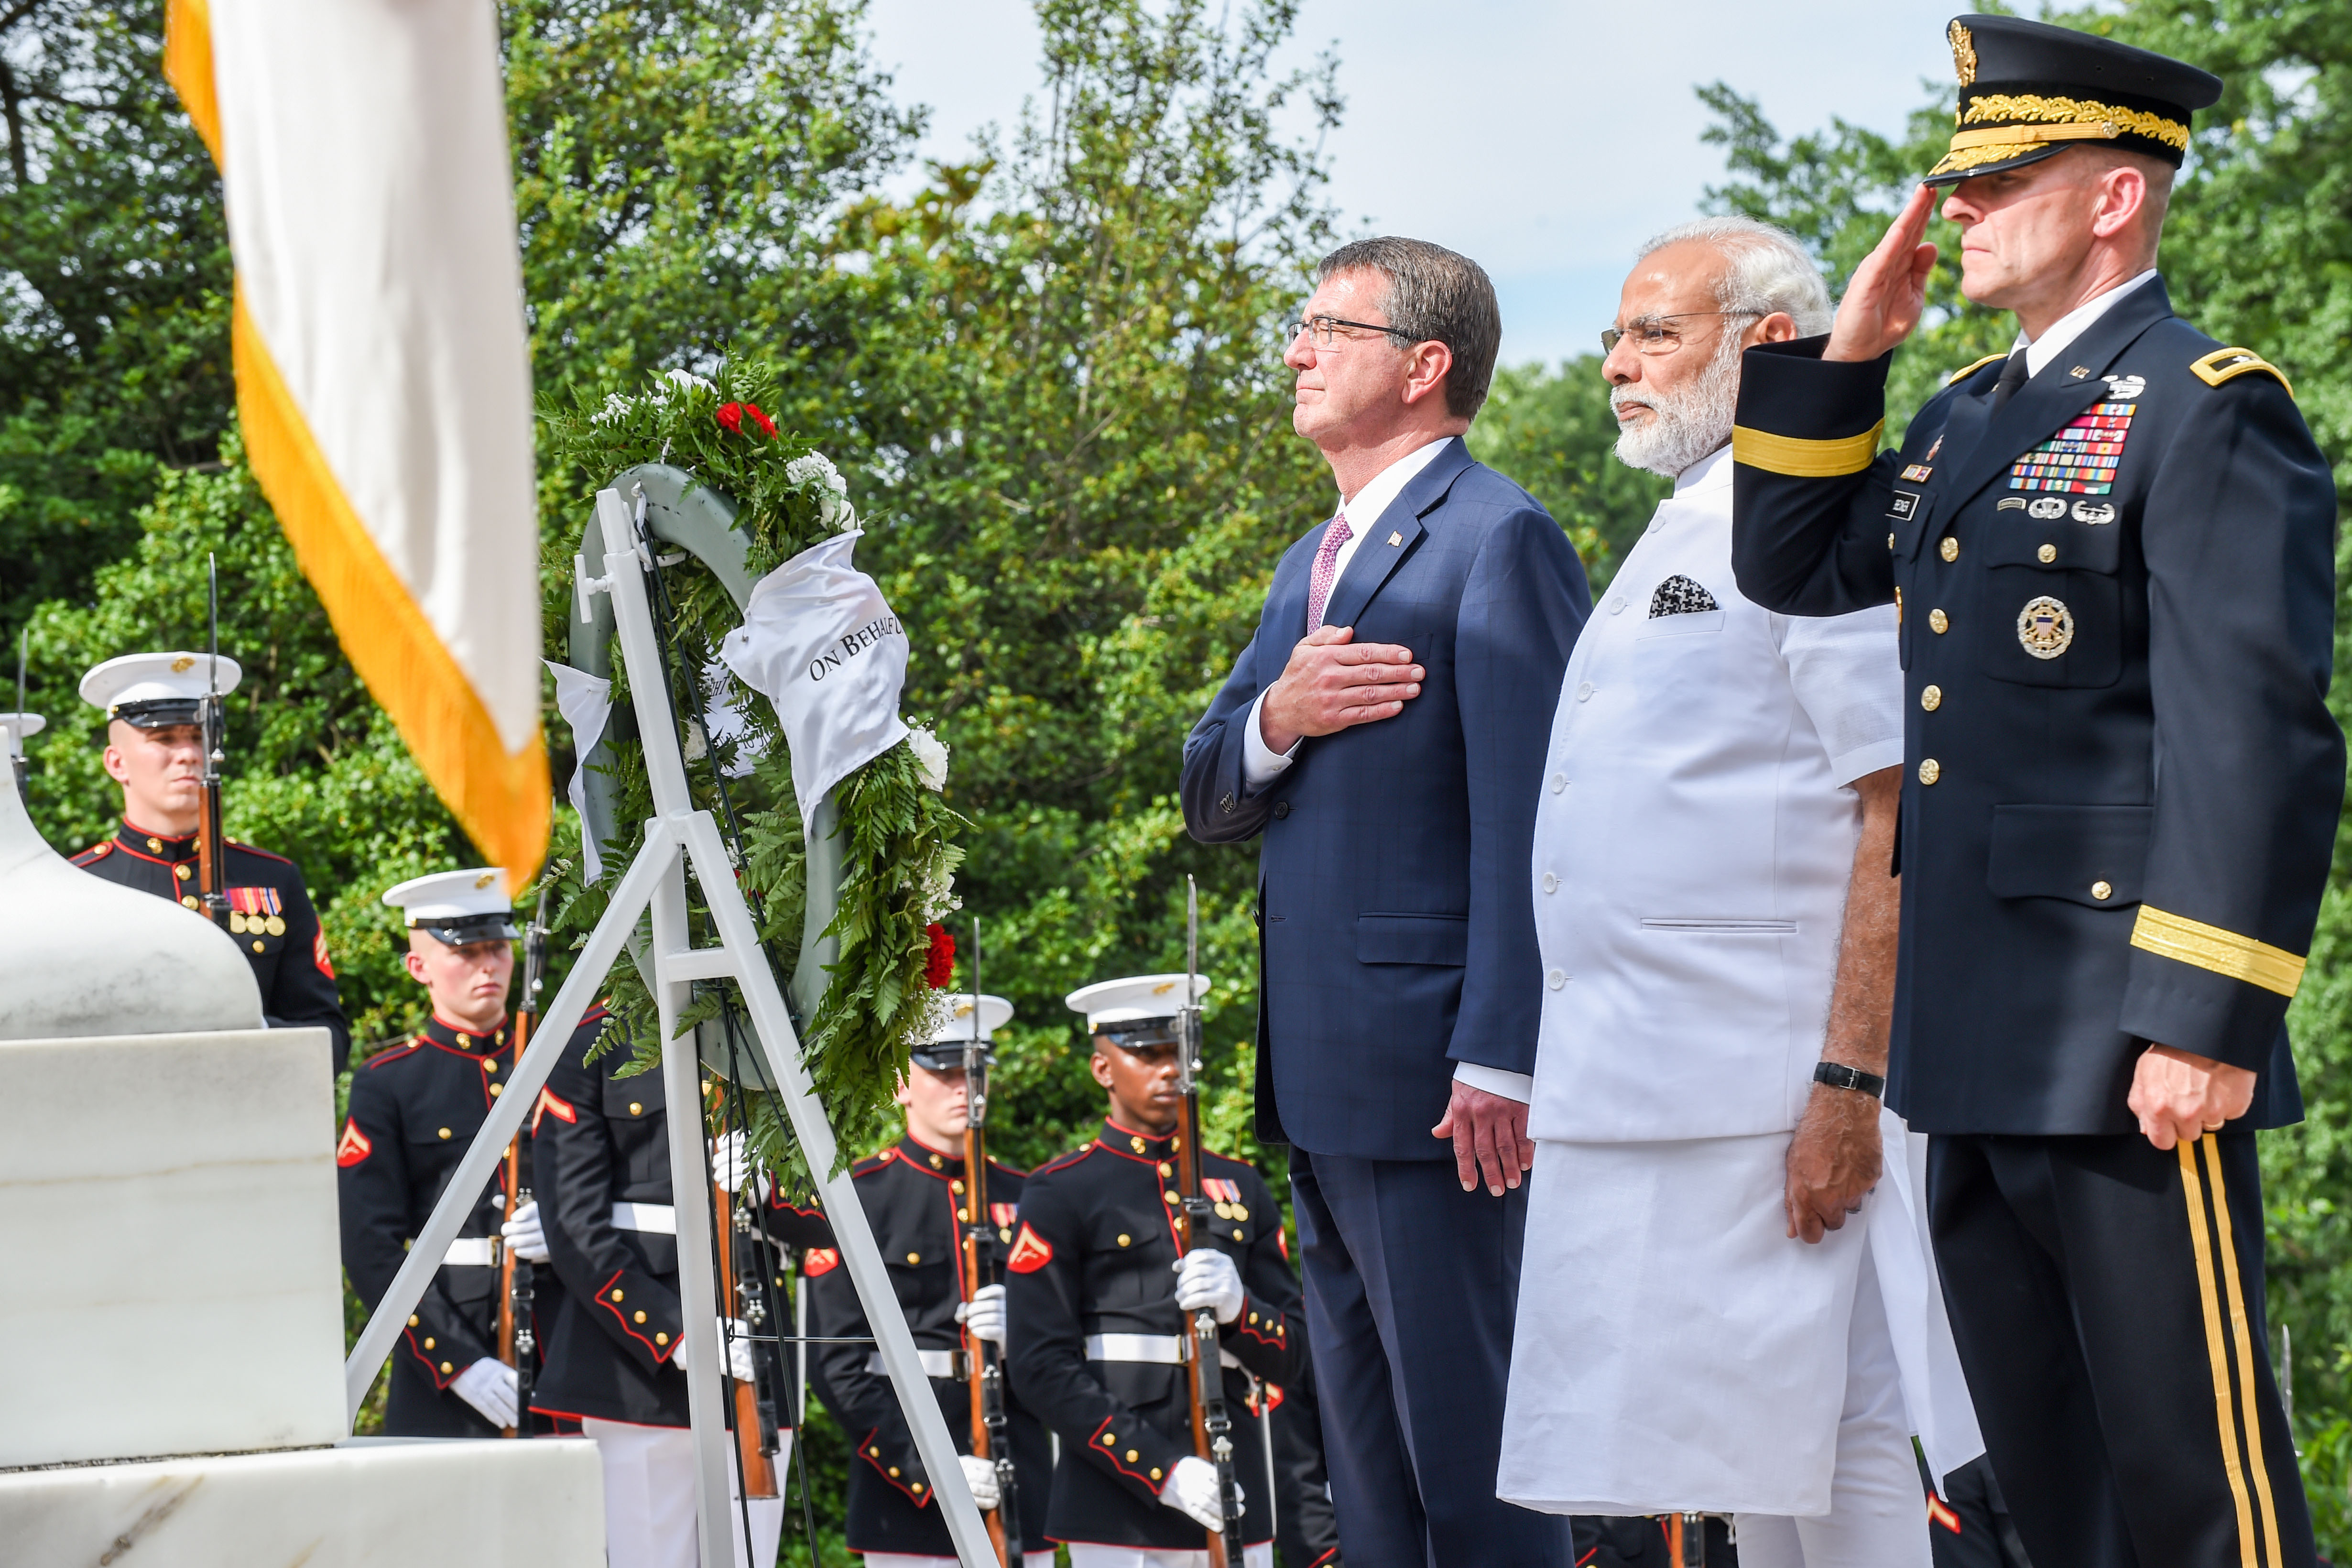 Secretary of Defense Ash Carter takes part in a wreath-laying ceremony with India Prime Minister Narendra Modi at Arlington National Cemetery, Virginia June 6, 2016.(DoD photo by U.S. Army Sgt. First Class Clydell Kinchen)(Released)